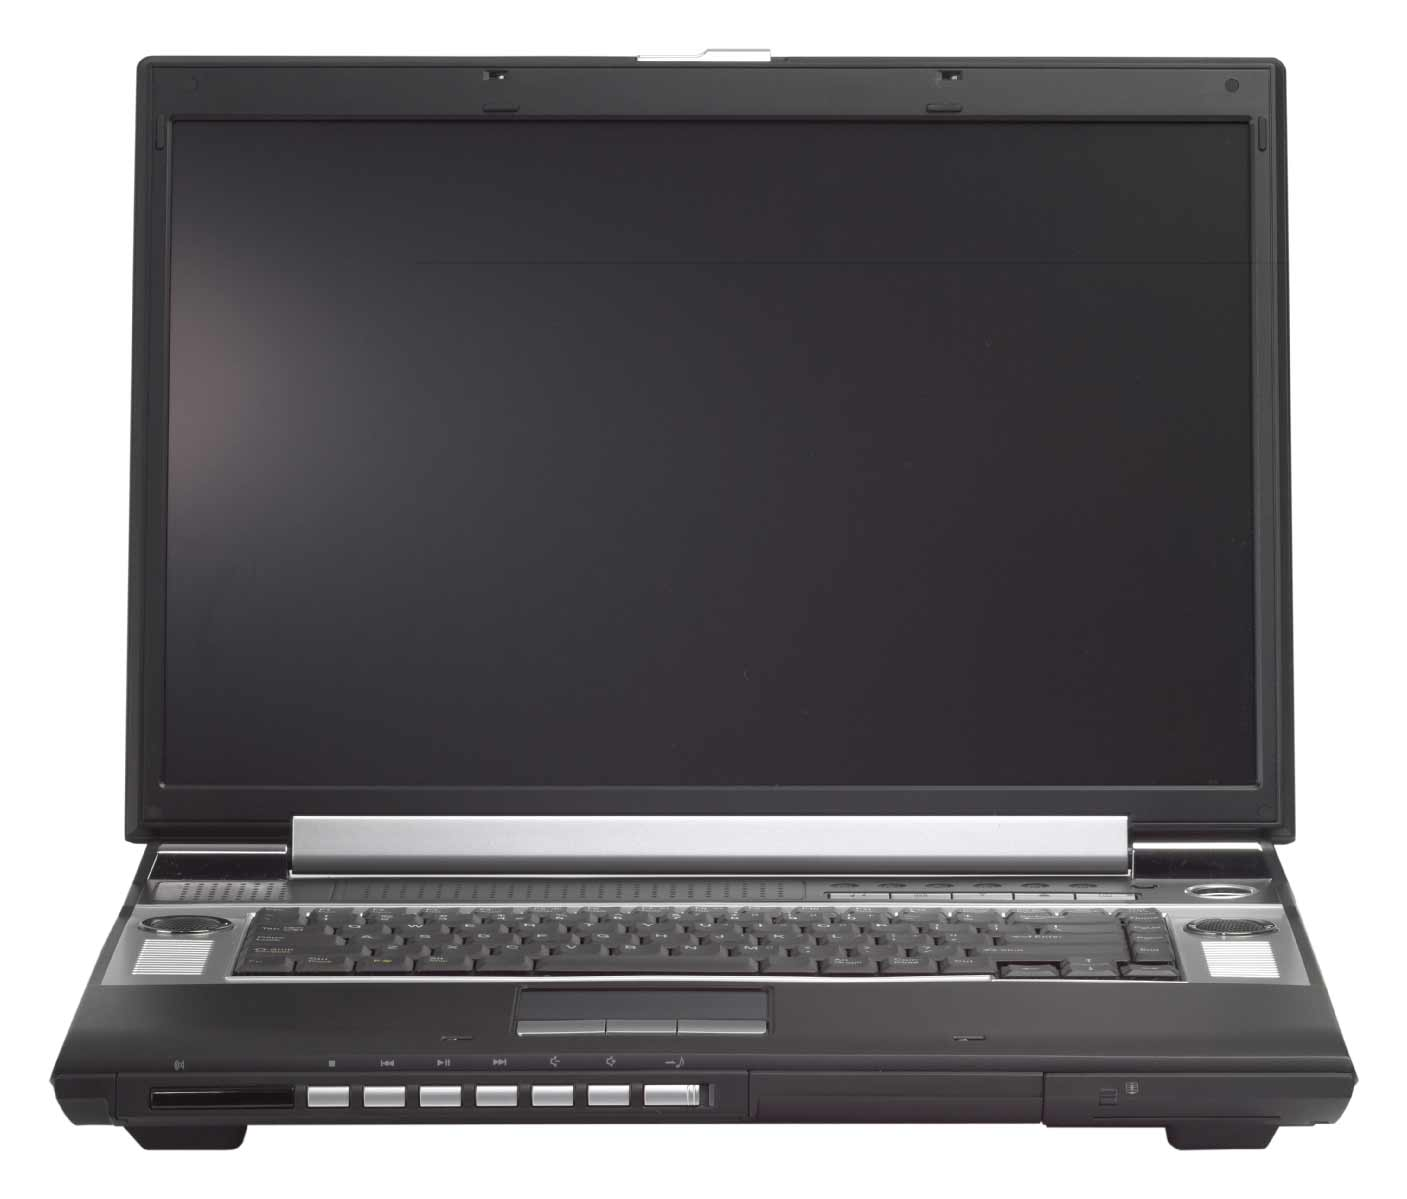 sun best mobile workstation